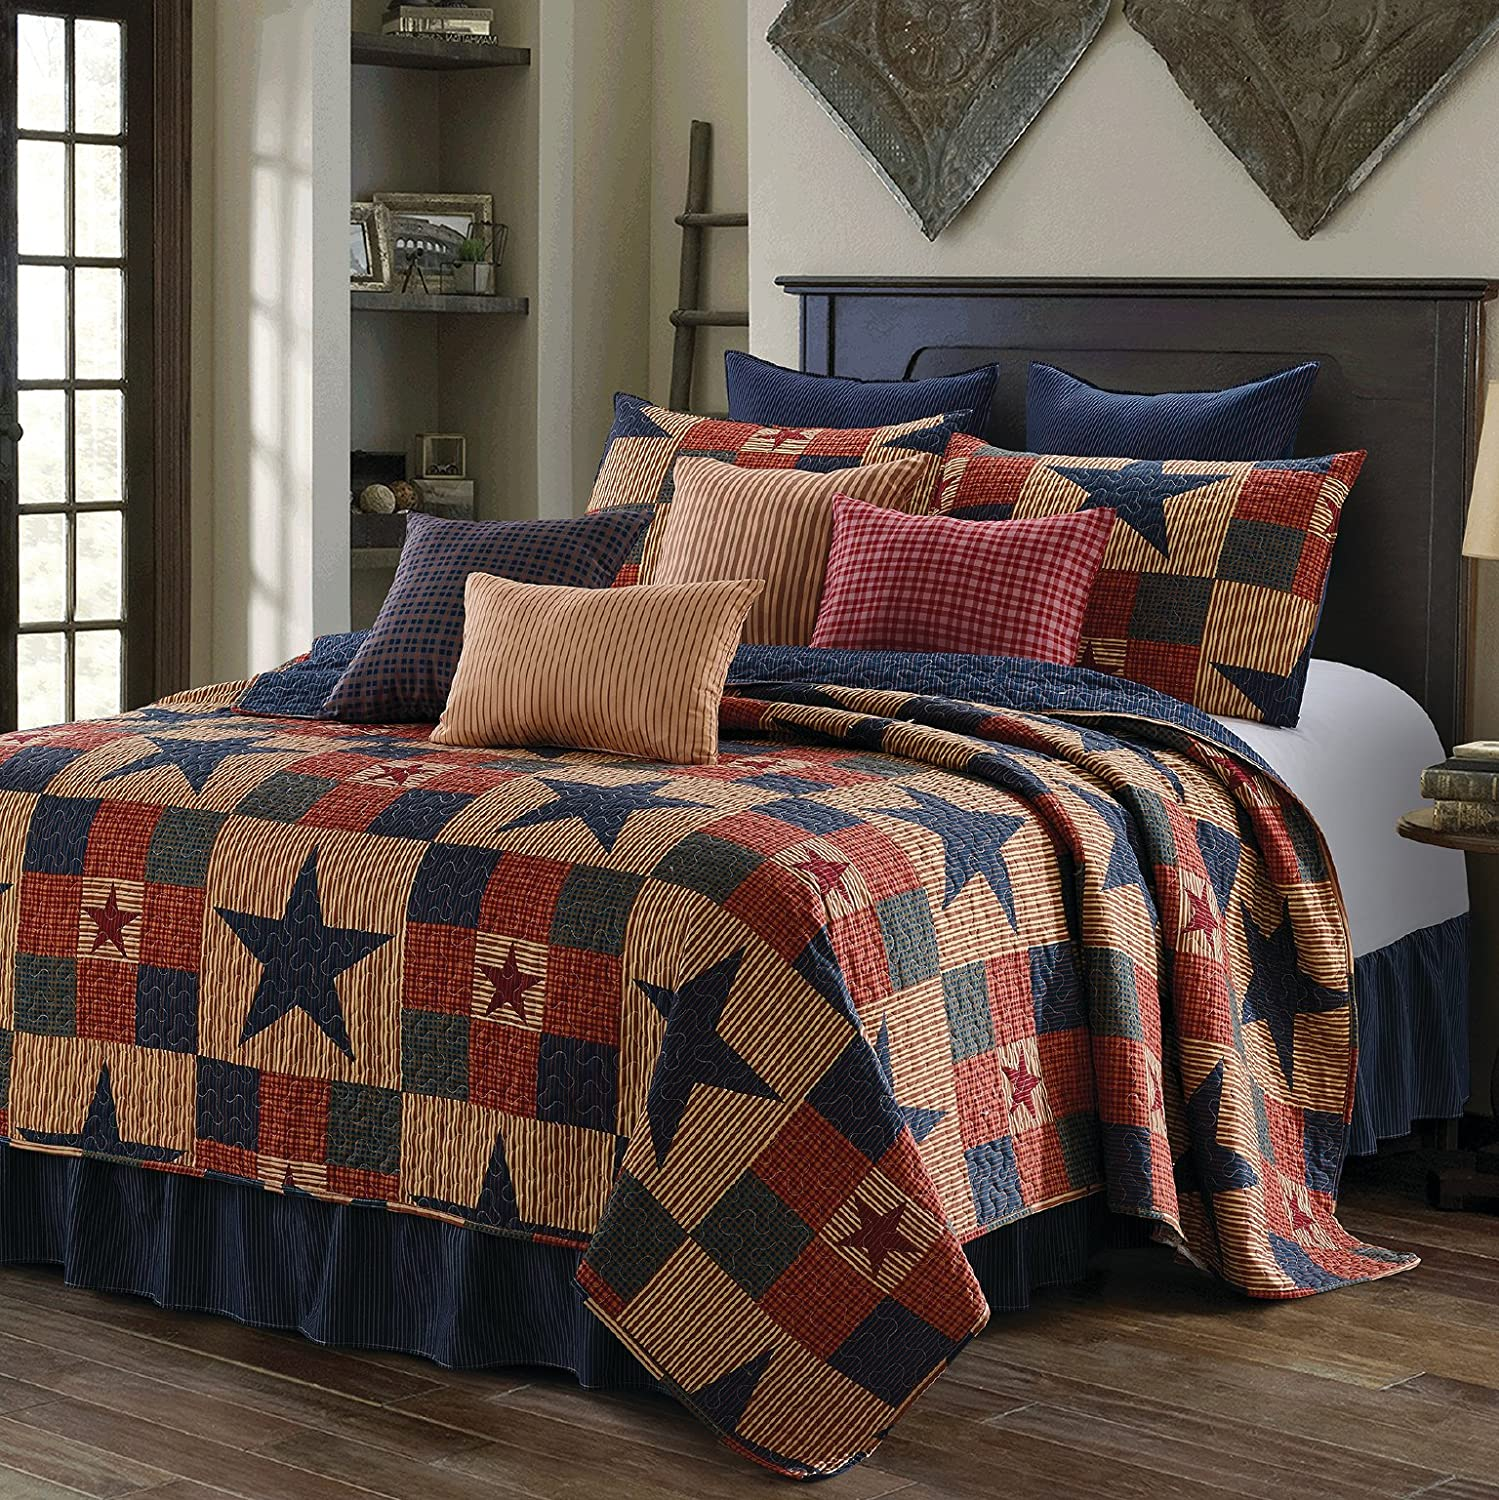 Virah Bella 3 Piece Mountain Cabin Stars Rustic 3 Piece Quilt and Sham Set (Blue, Queen/Full) Duke Imports 485